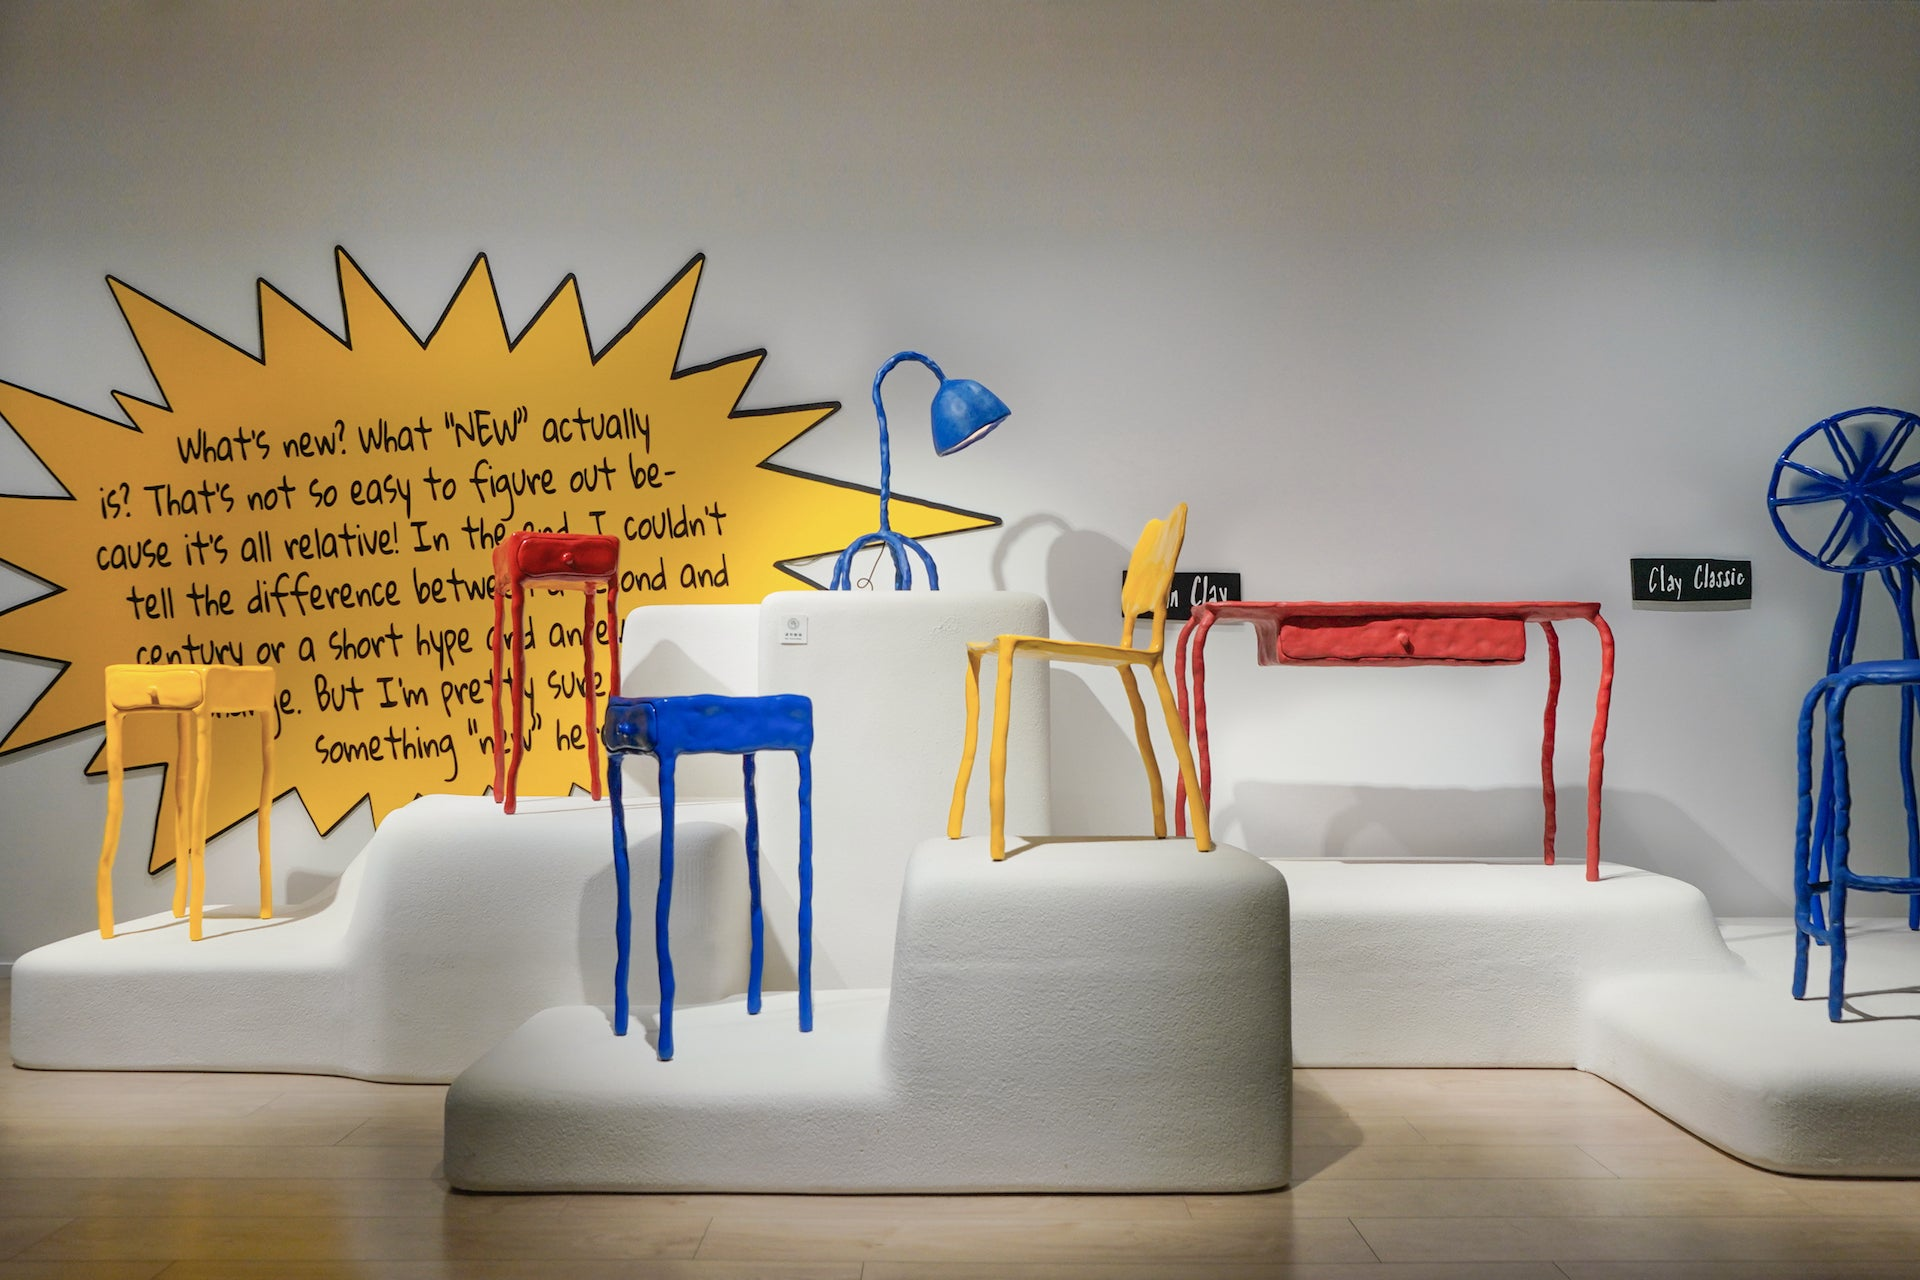 What's New by Maarten Baas, presented by GDD and Gallery All. Photo © Gallery All